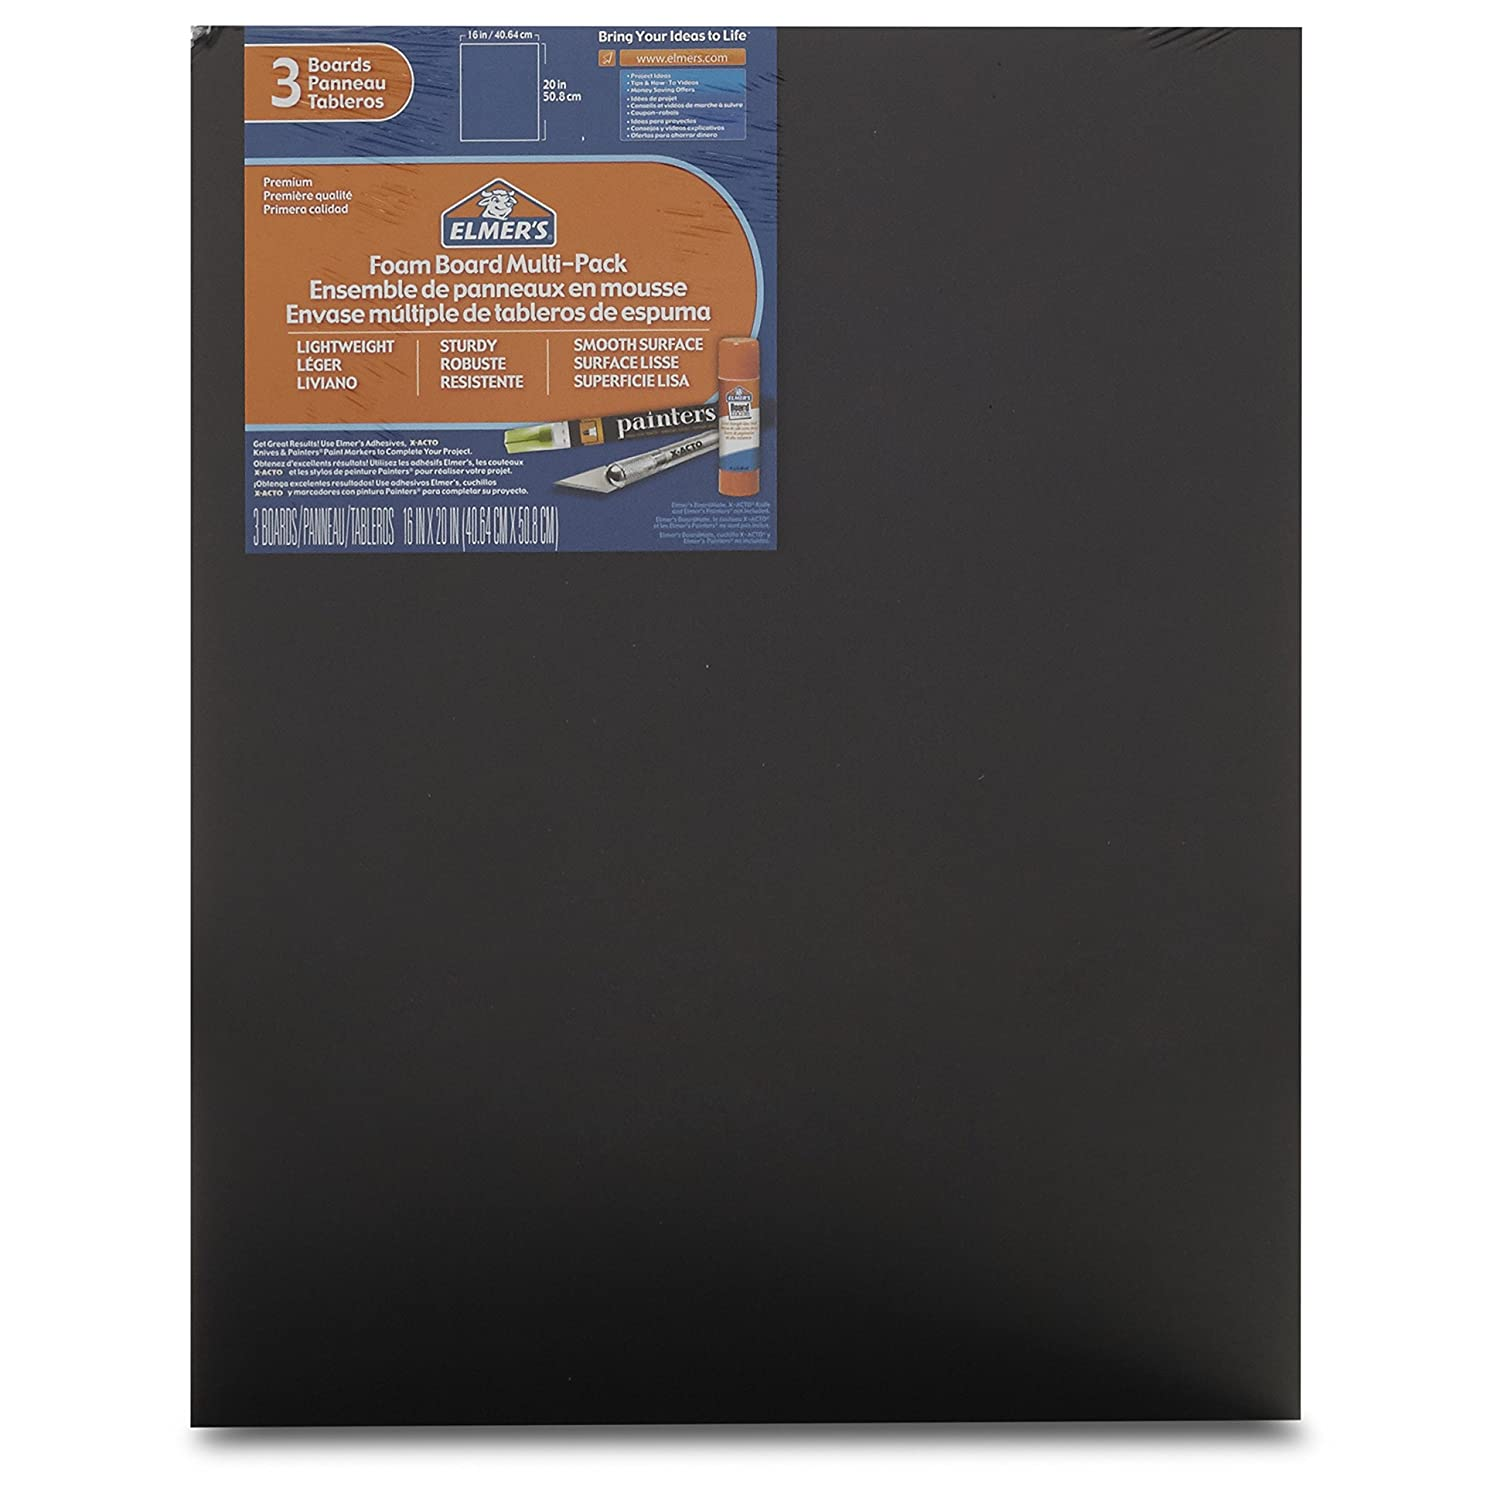 Elmers Foam Board Multi-Pack, Black, 16x20 Inch, Pack of 3